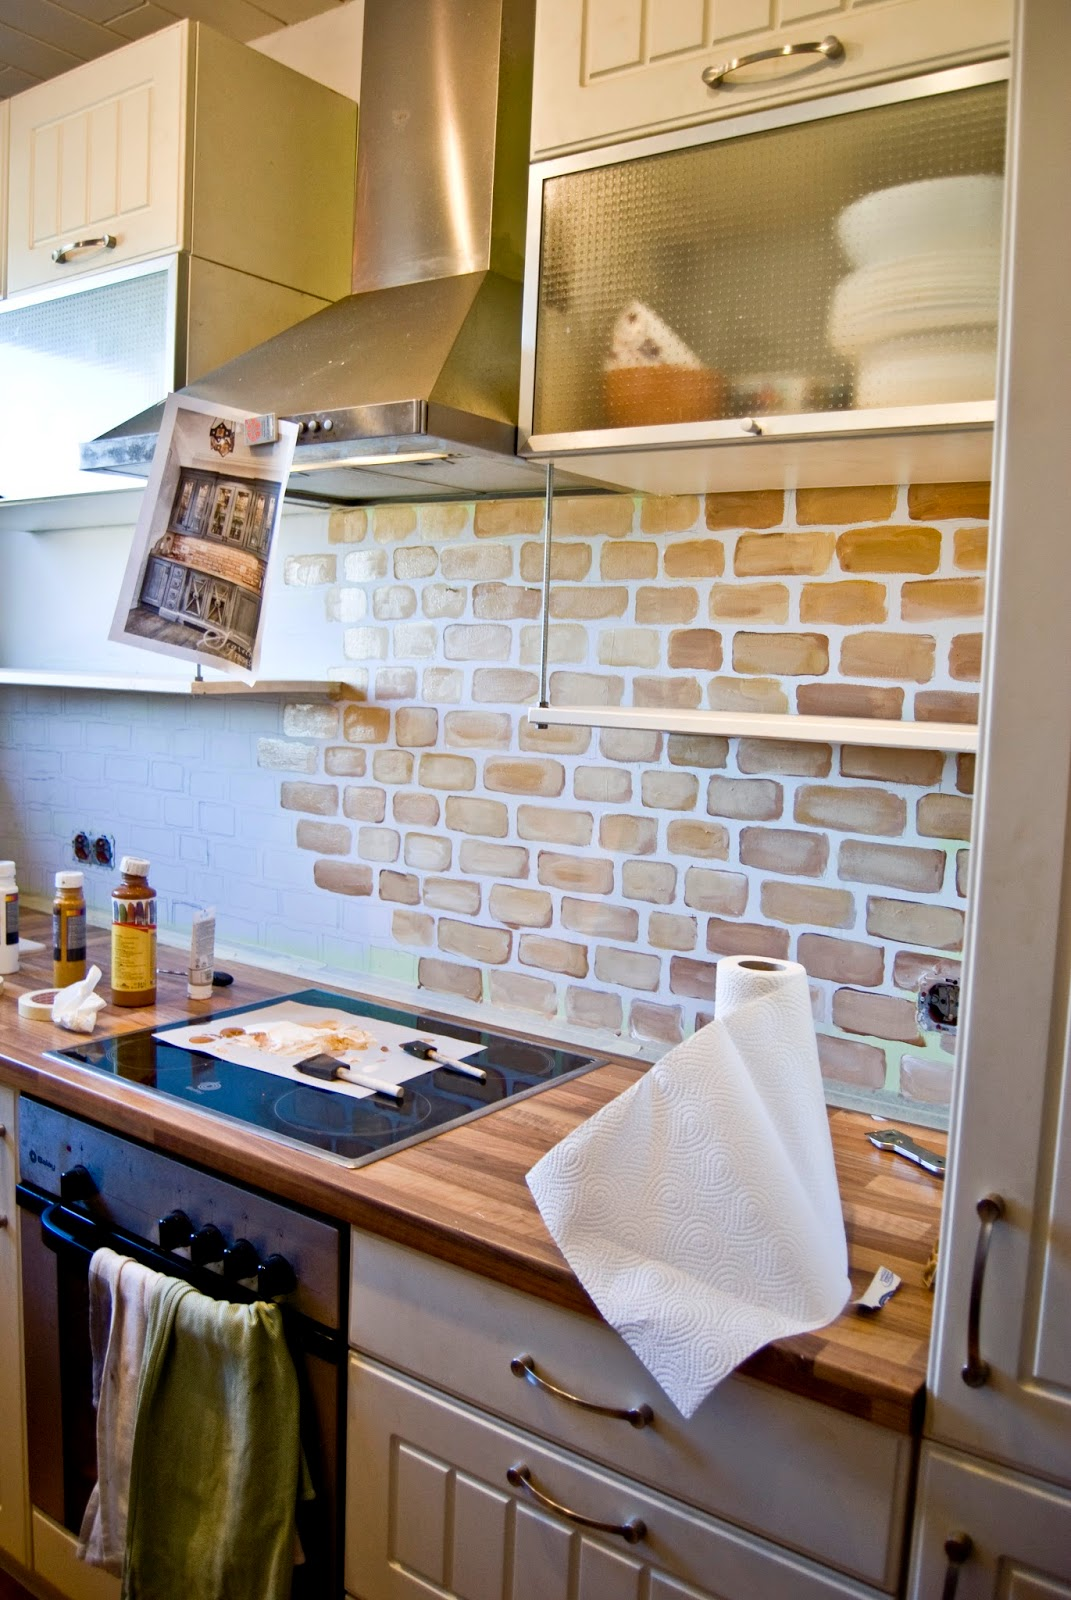 Image of: Apbkbi39 Appealing Painted Brick Kitchen Backsplash Ideas Today 2020 11 22